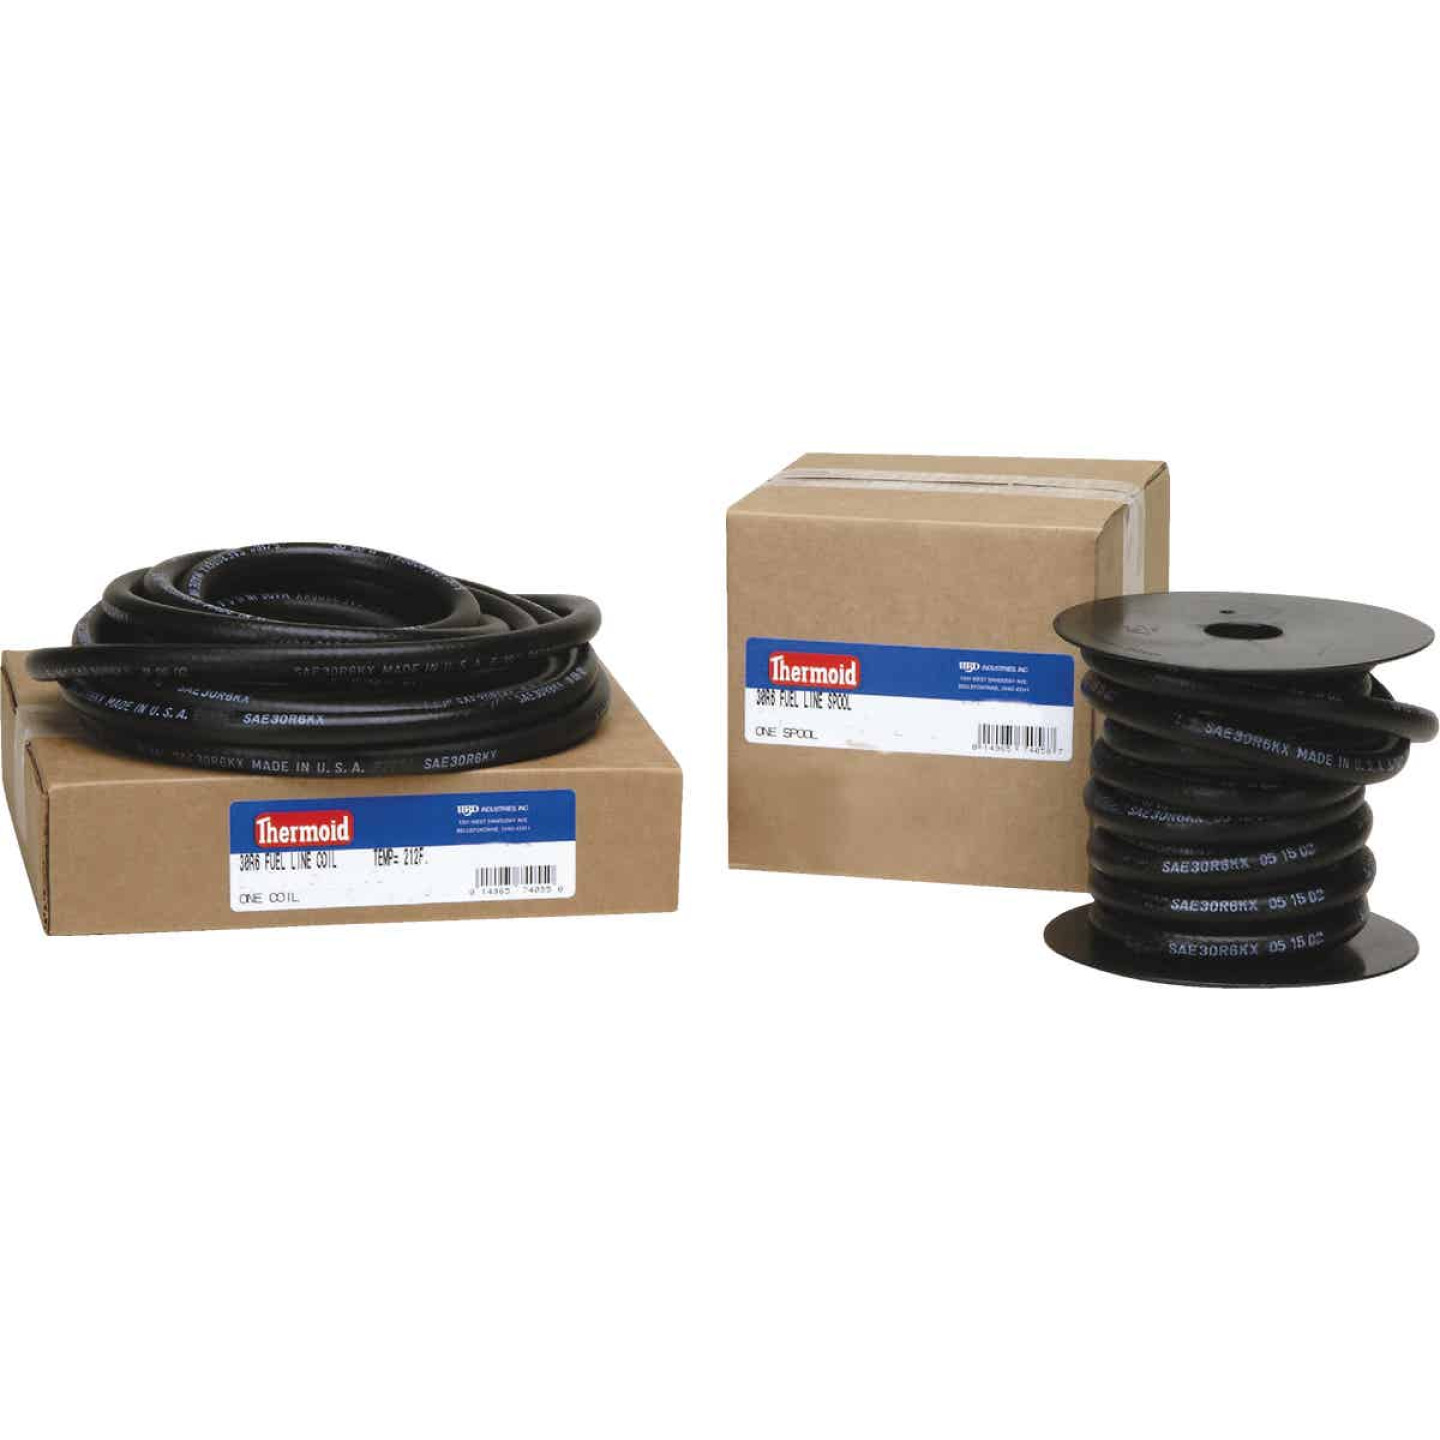 Thermoid 1/4 In. ID x 2 Ft. L. Fuel Line Hose Image 1